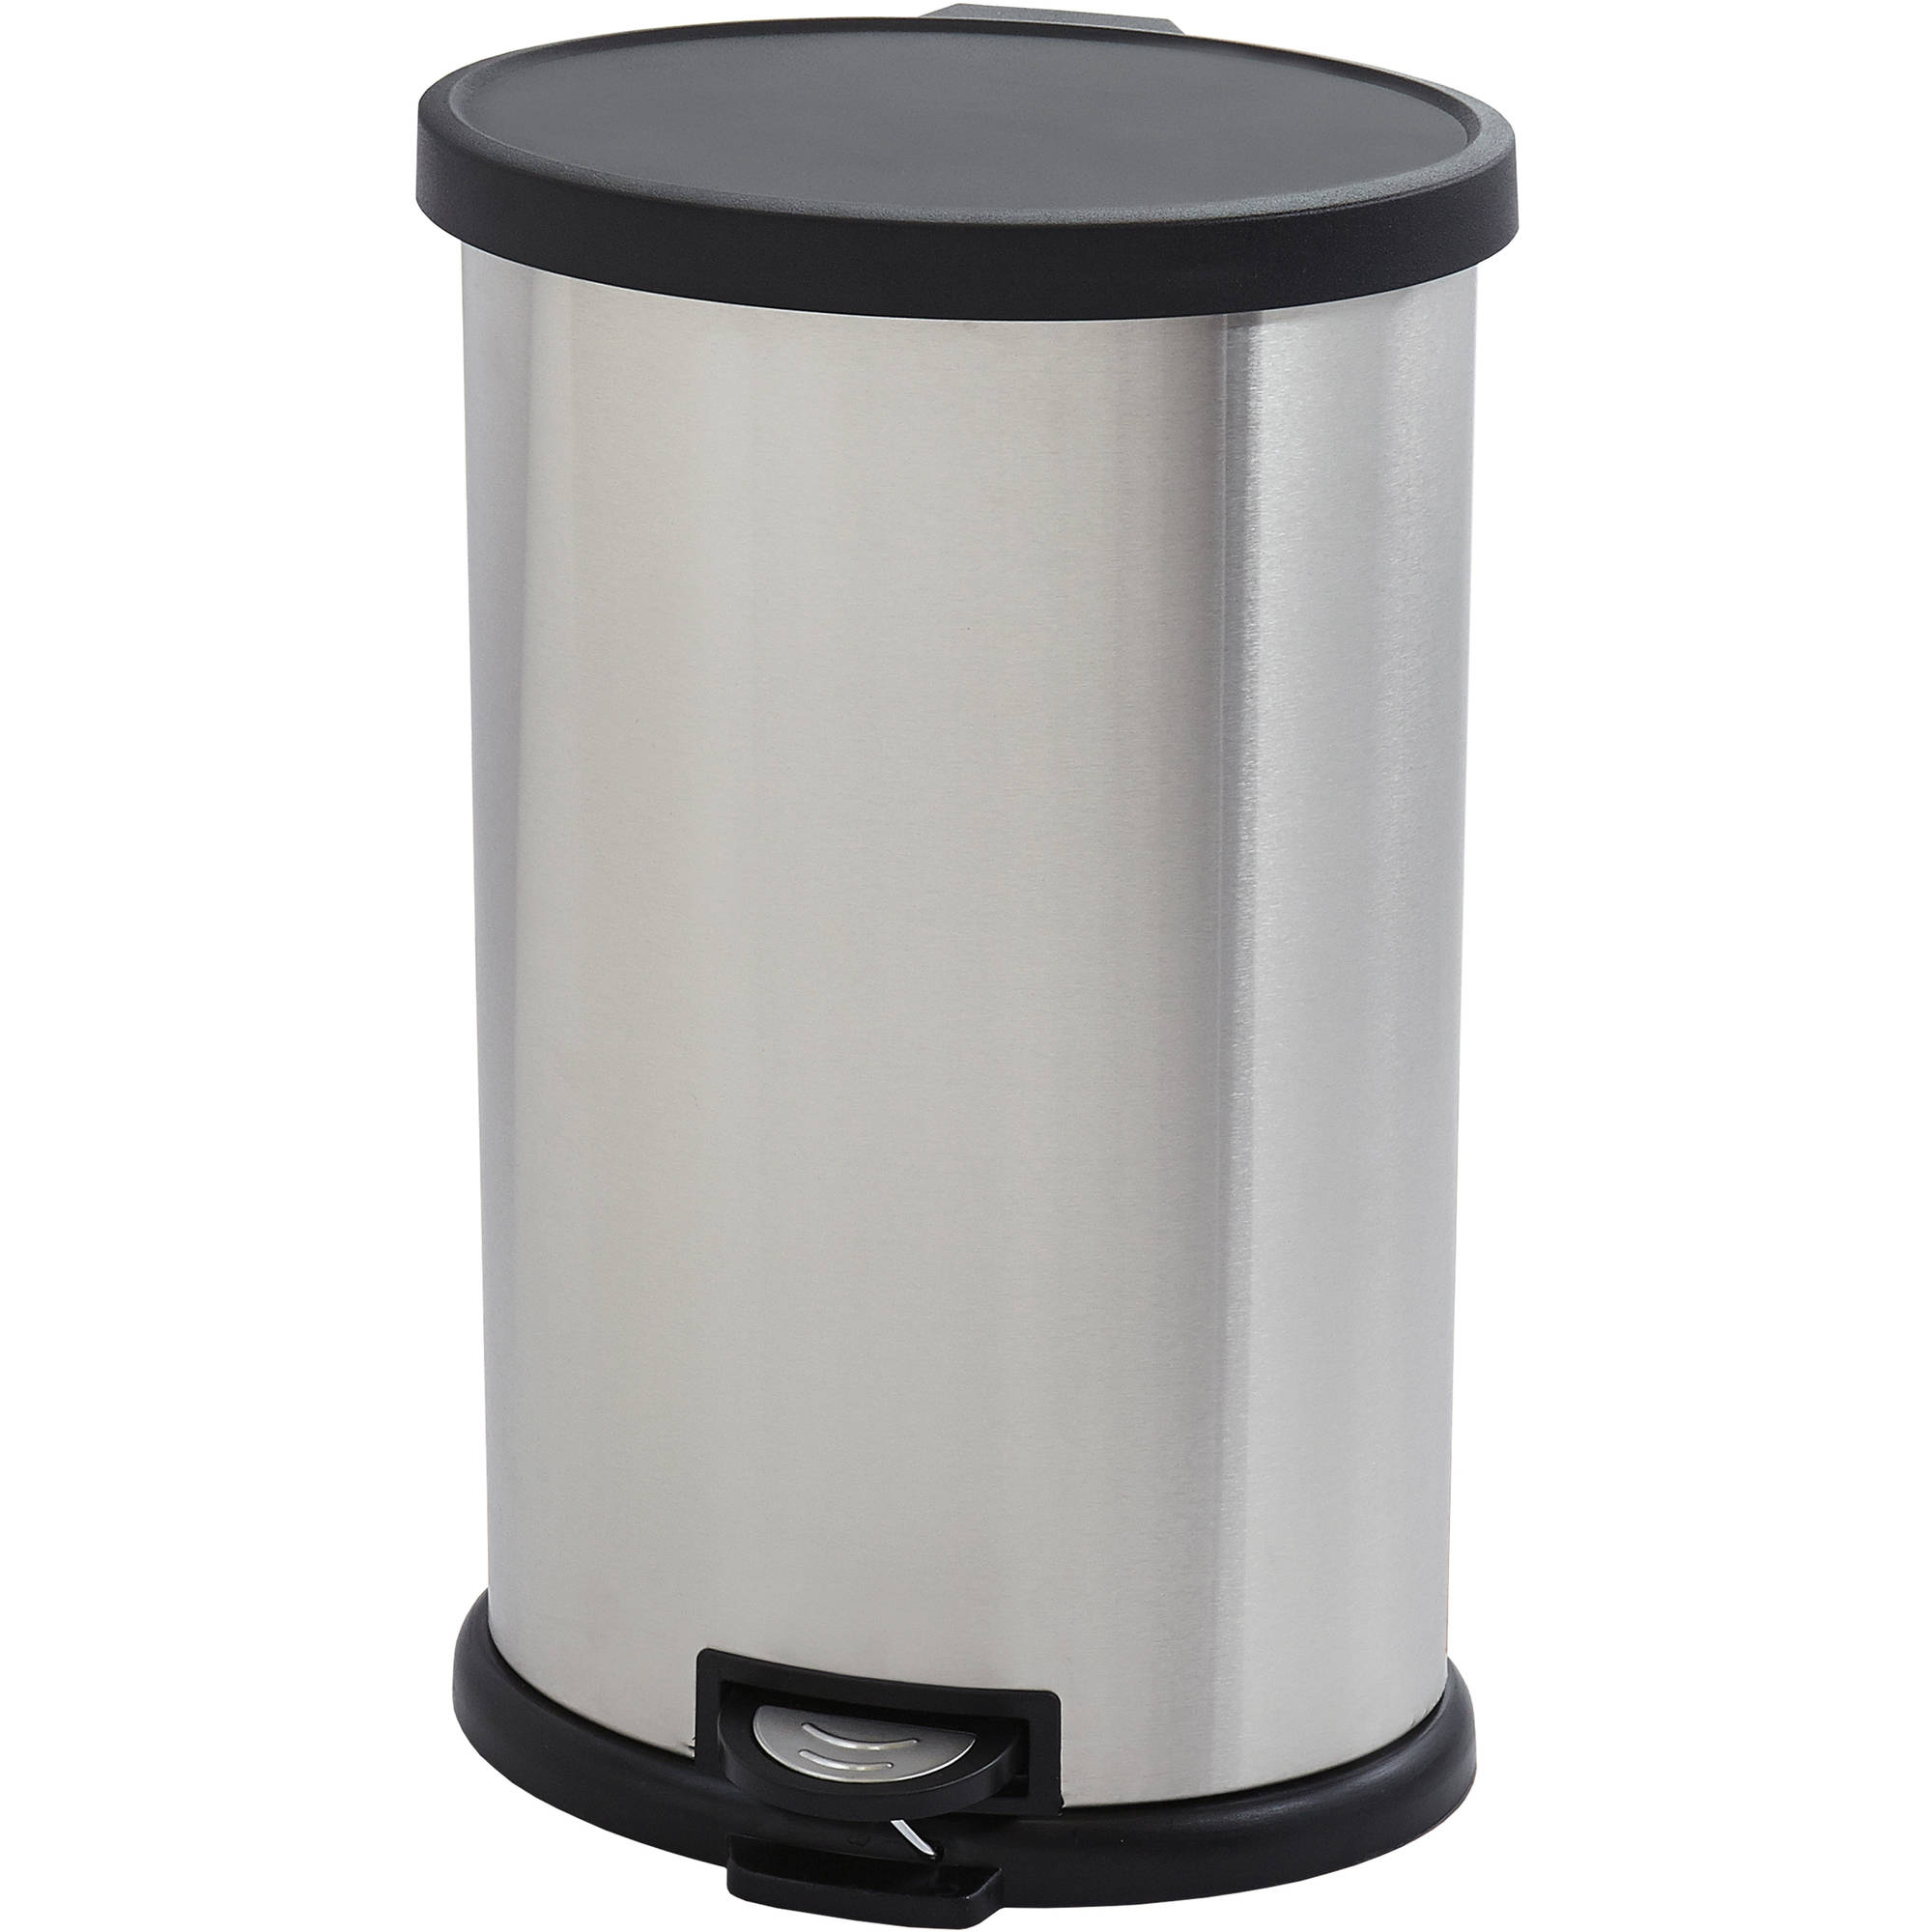 better homes and gardens 30-liter oval trashcan, stainless steel